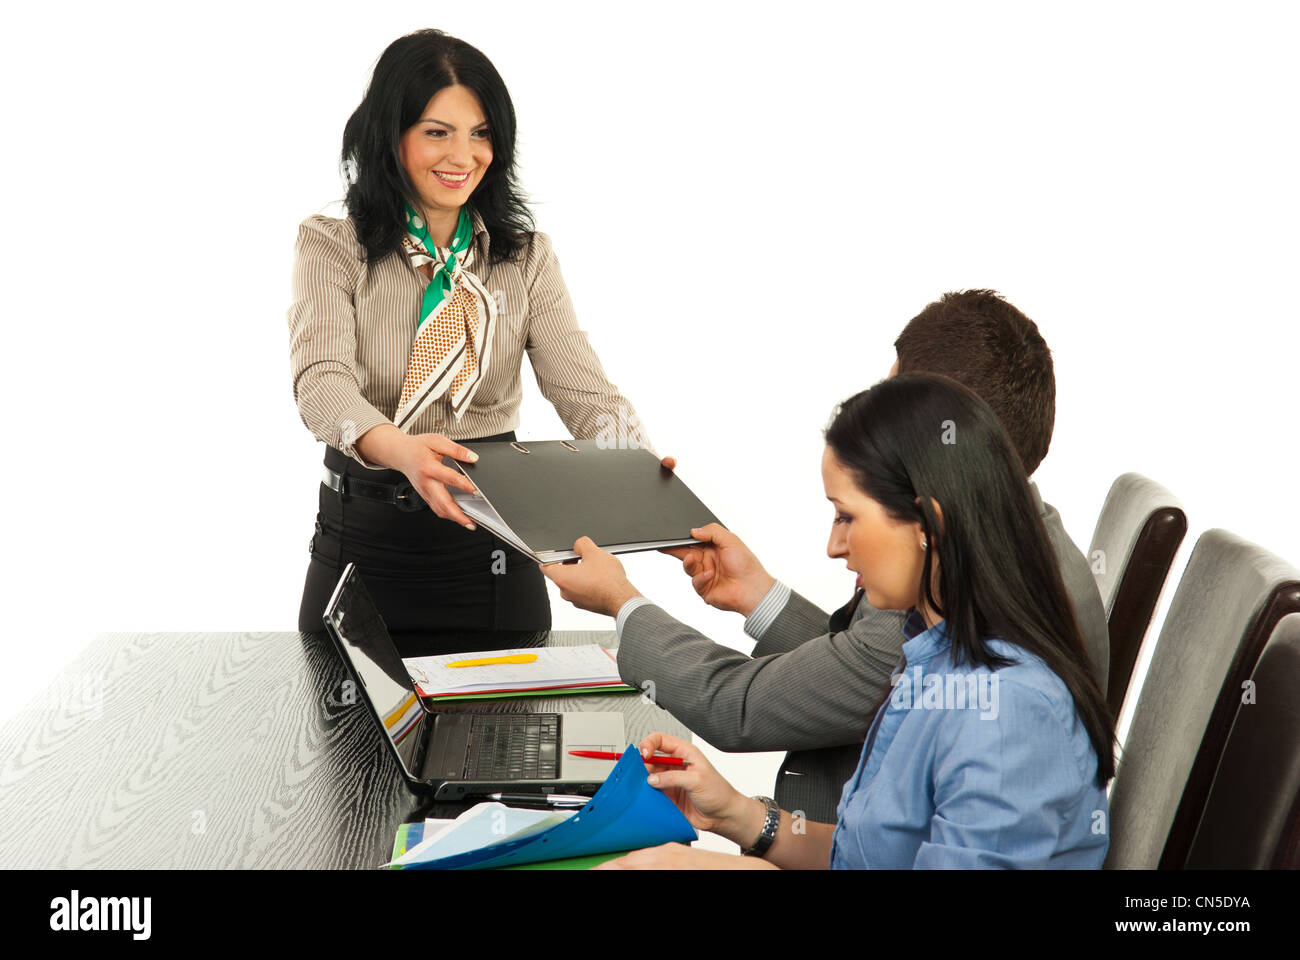 Happy manager woman giving folder to executive man at meeting against white background Stock Photo